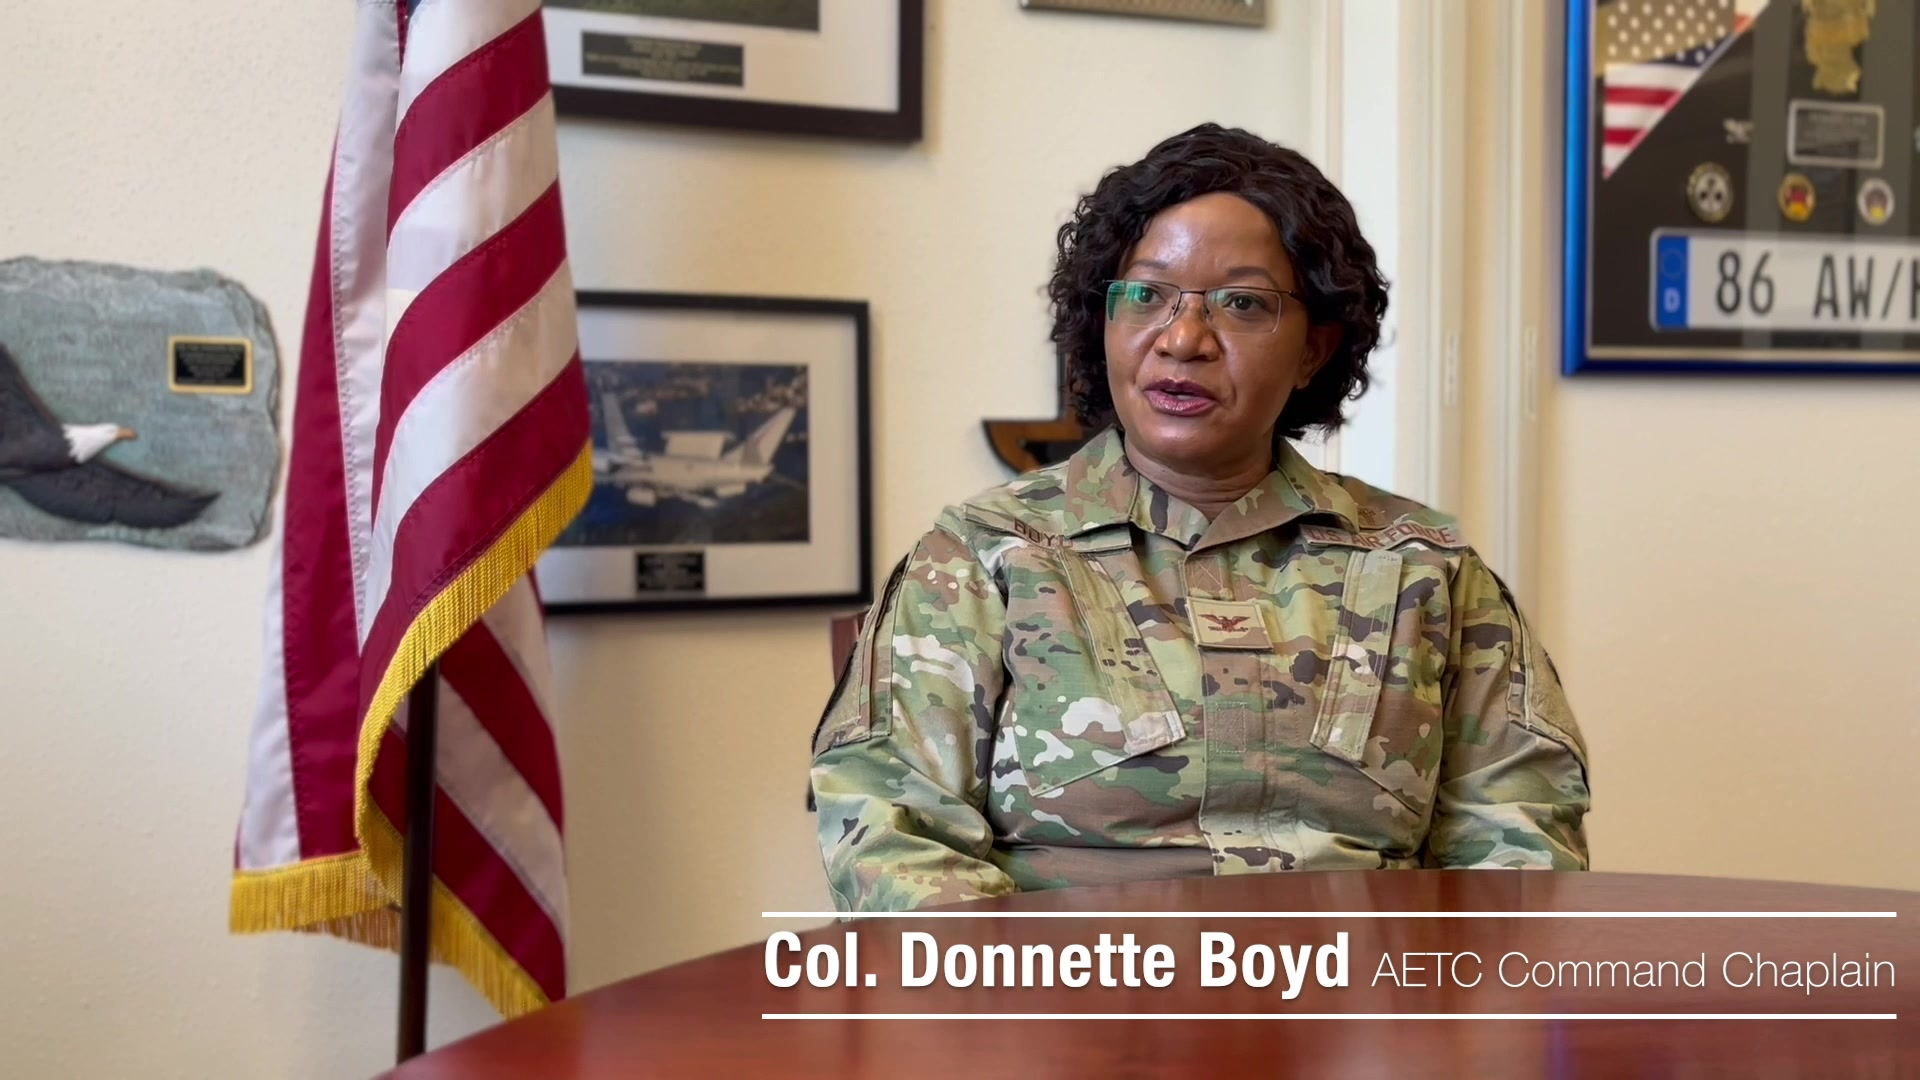 Col. Donnette Boyd, AETC Command Chaplain, explains the chaplain's role in Air Force religious accommodation requests.